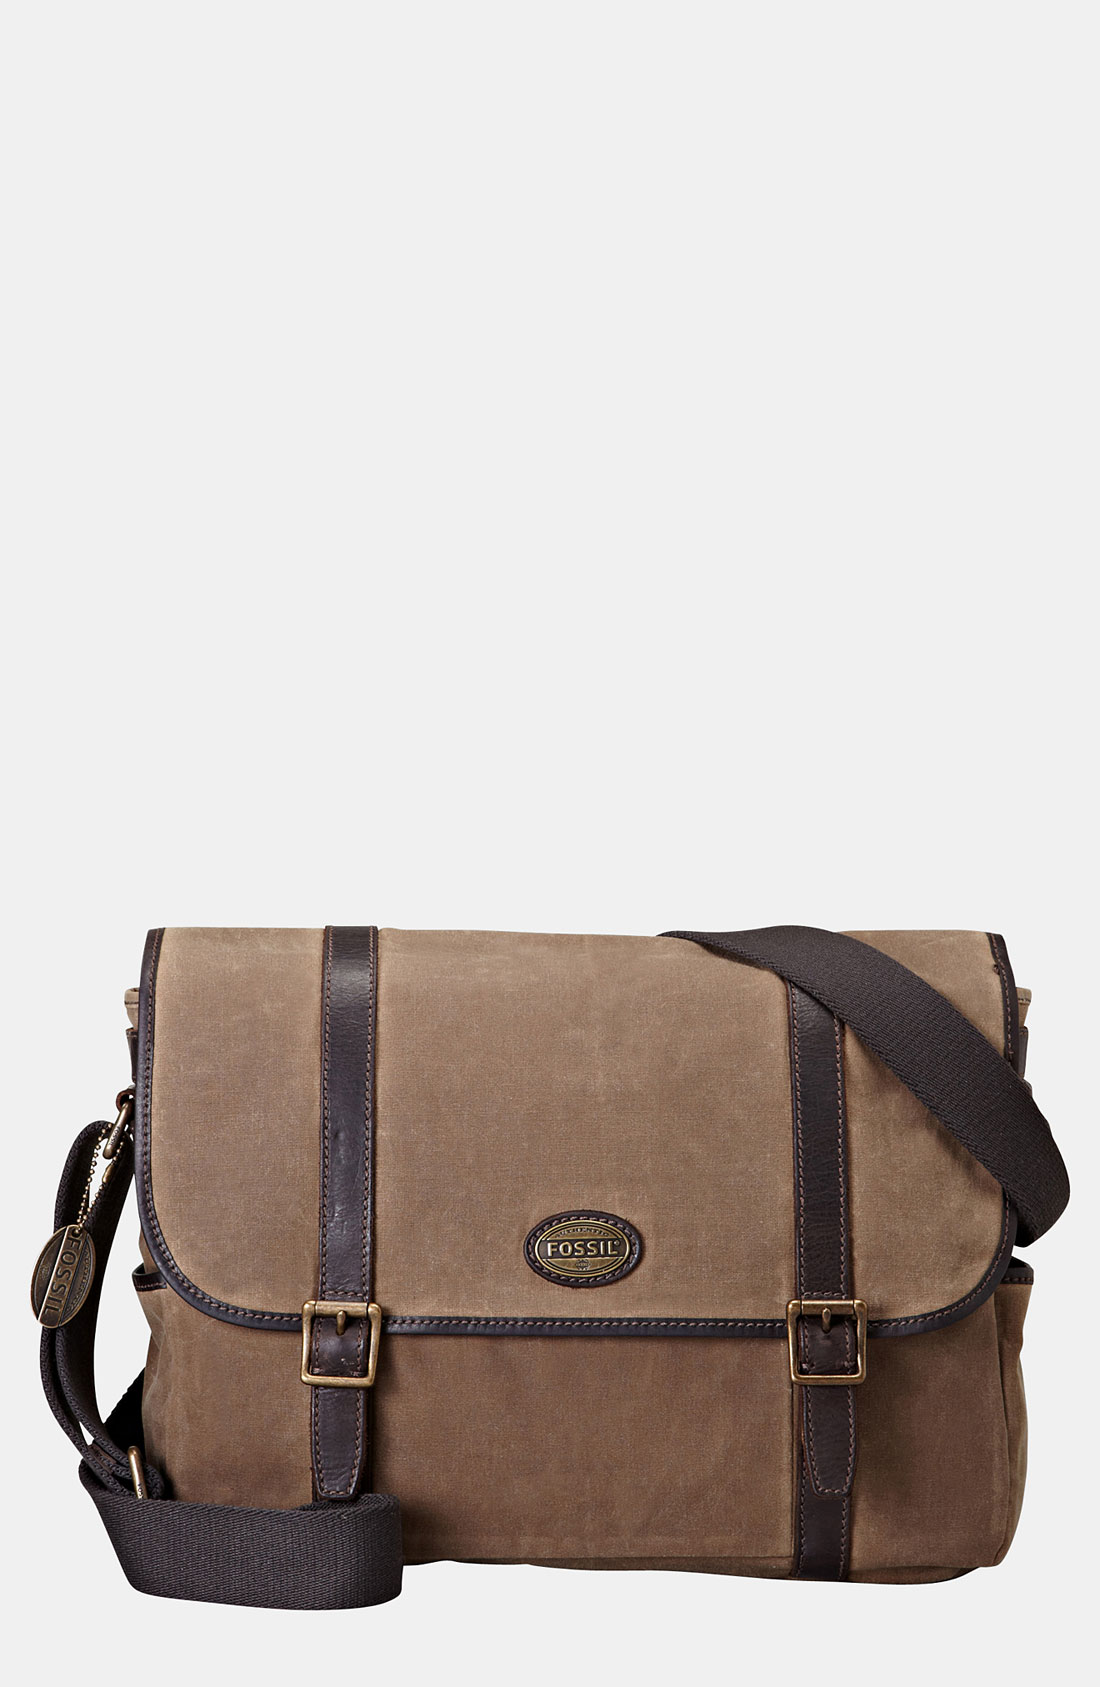 Amazing Business Insider Has Affiliate Partnerships  Below, Youll Find 15 Of The Best Work Bag Options Out There Right Now For Both Men And Women Who Dont Want To Compromise On Style, Comfort, Or Versati